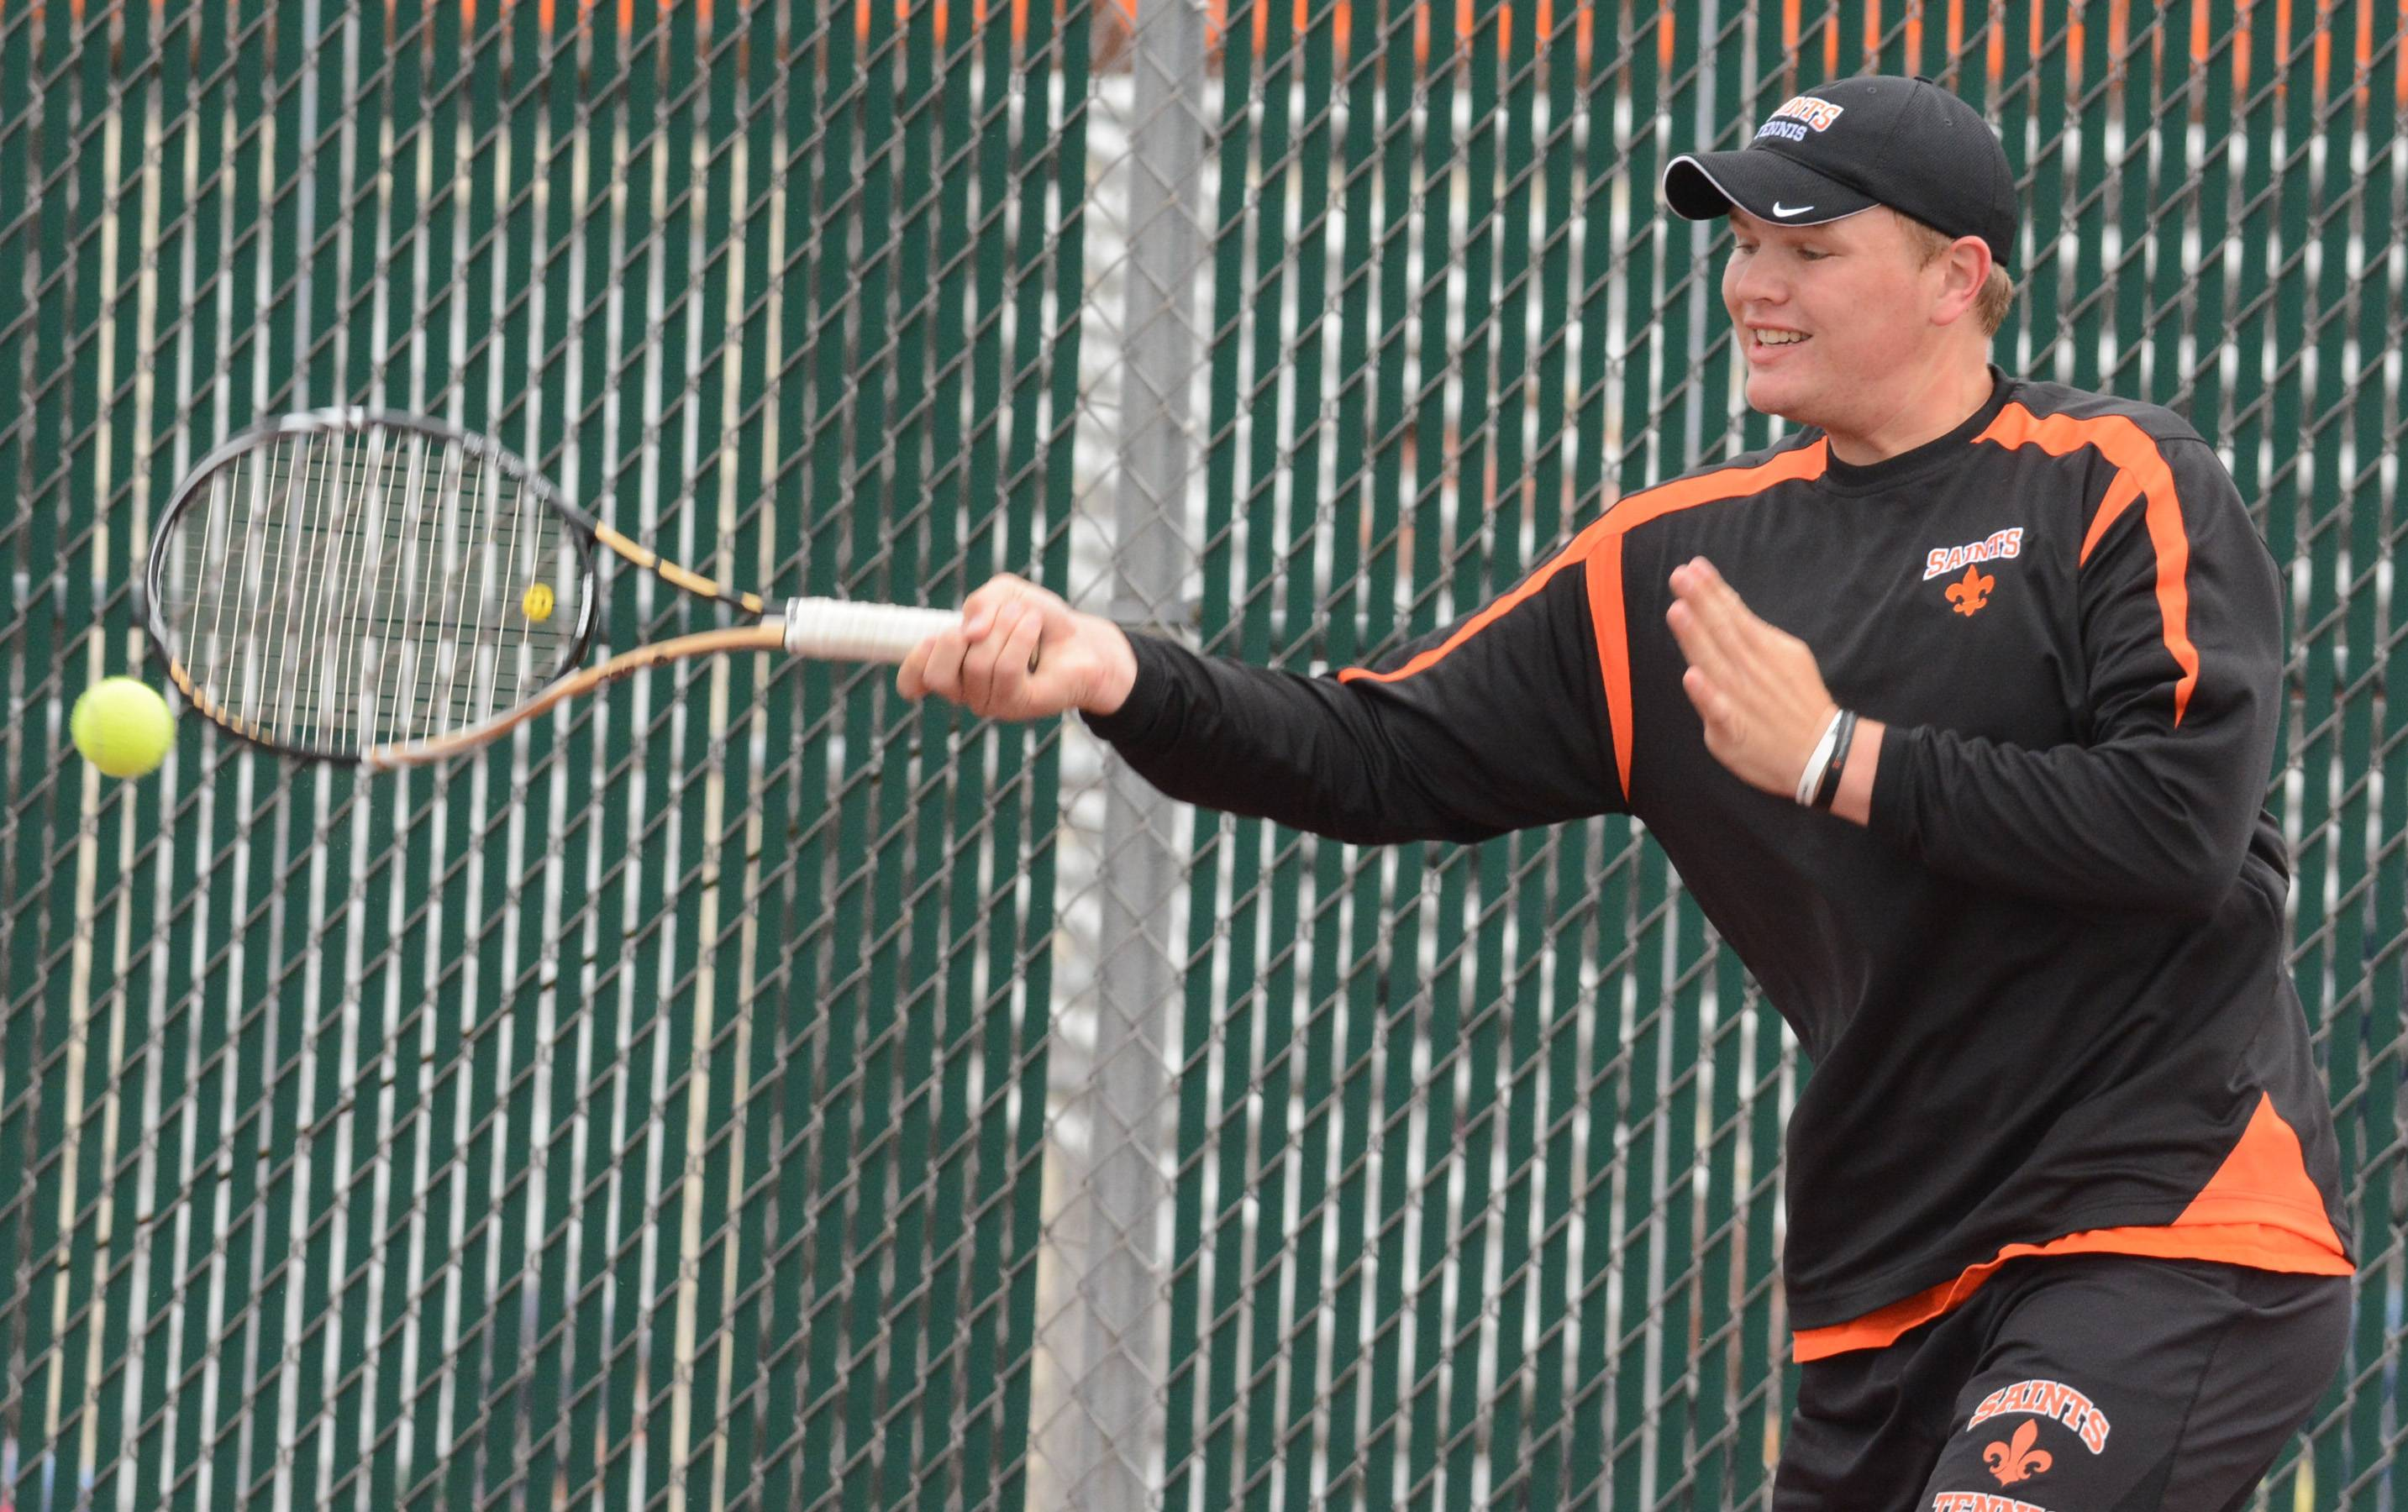 Koenen aims big in final year at St. Charles East